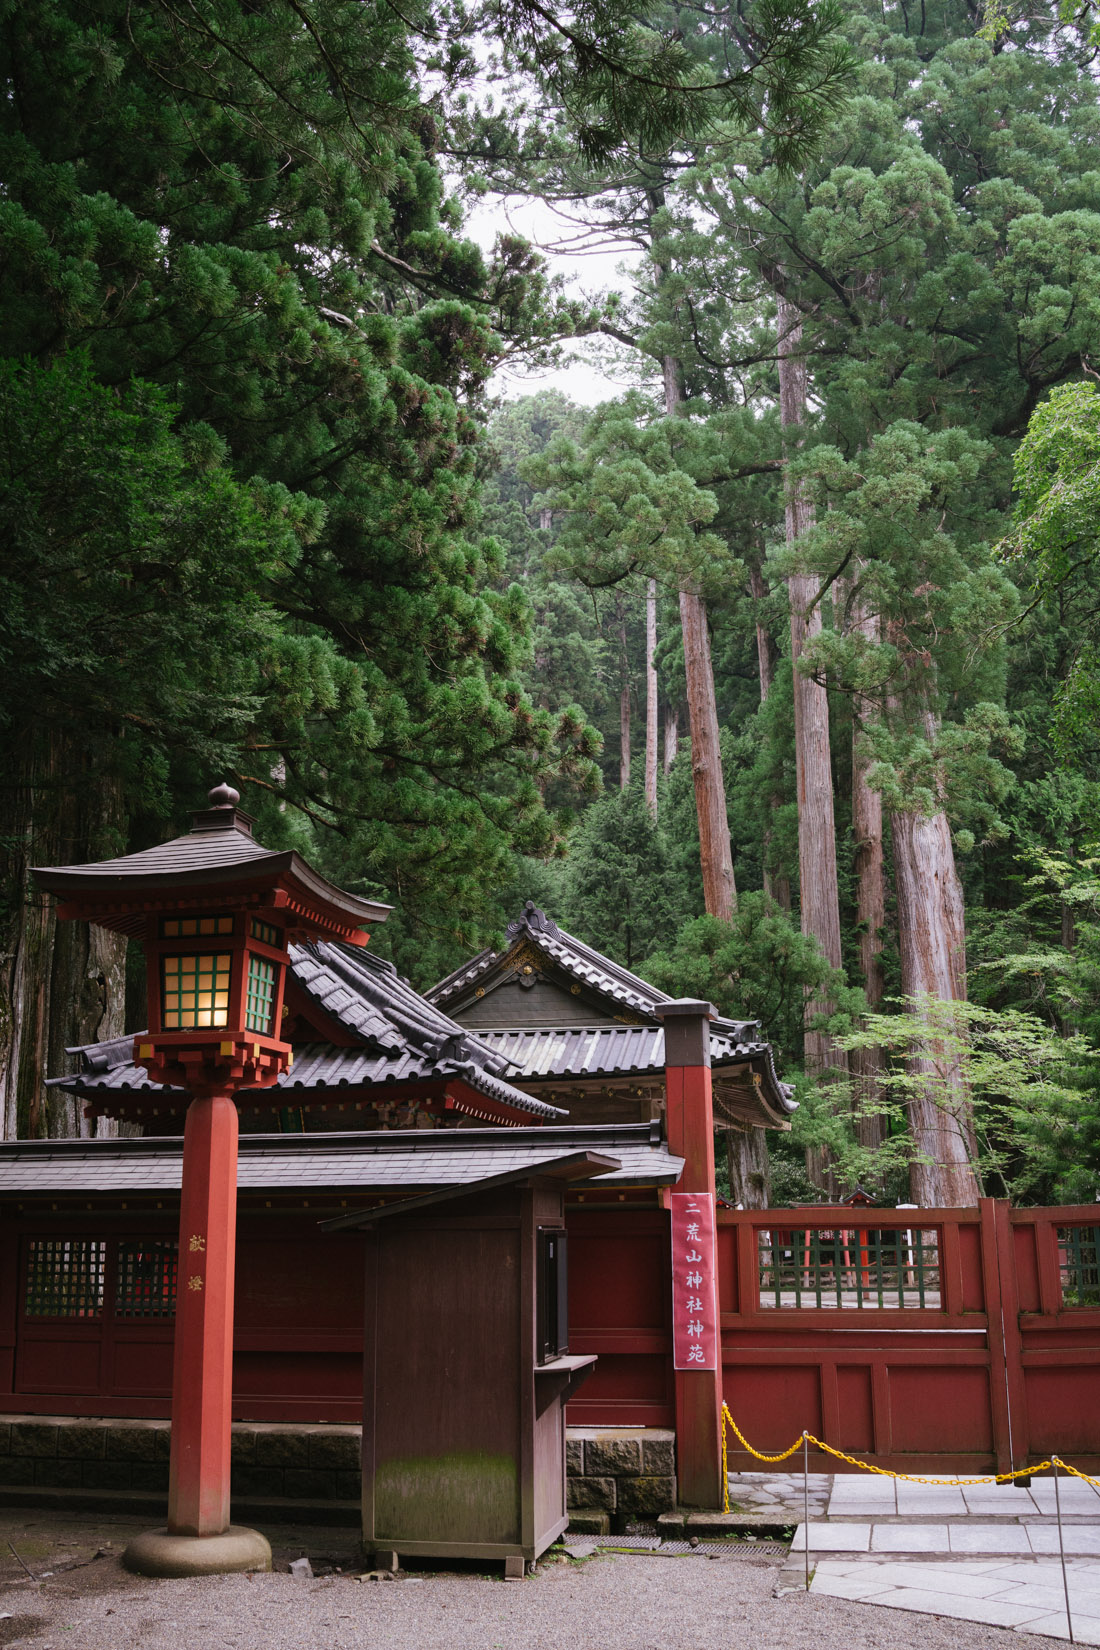 Futarasan shrine is literally surrounded by forest on all sides.